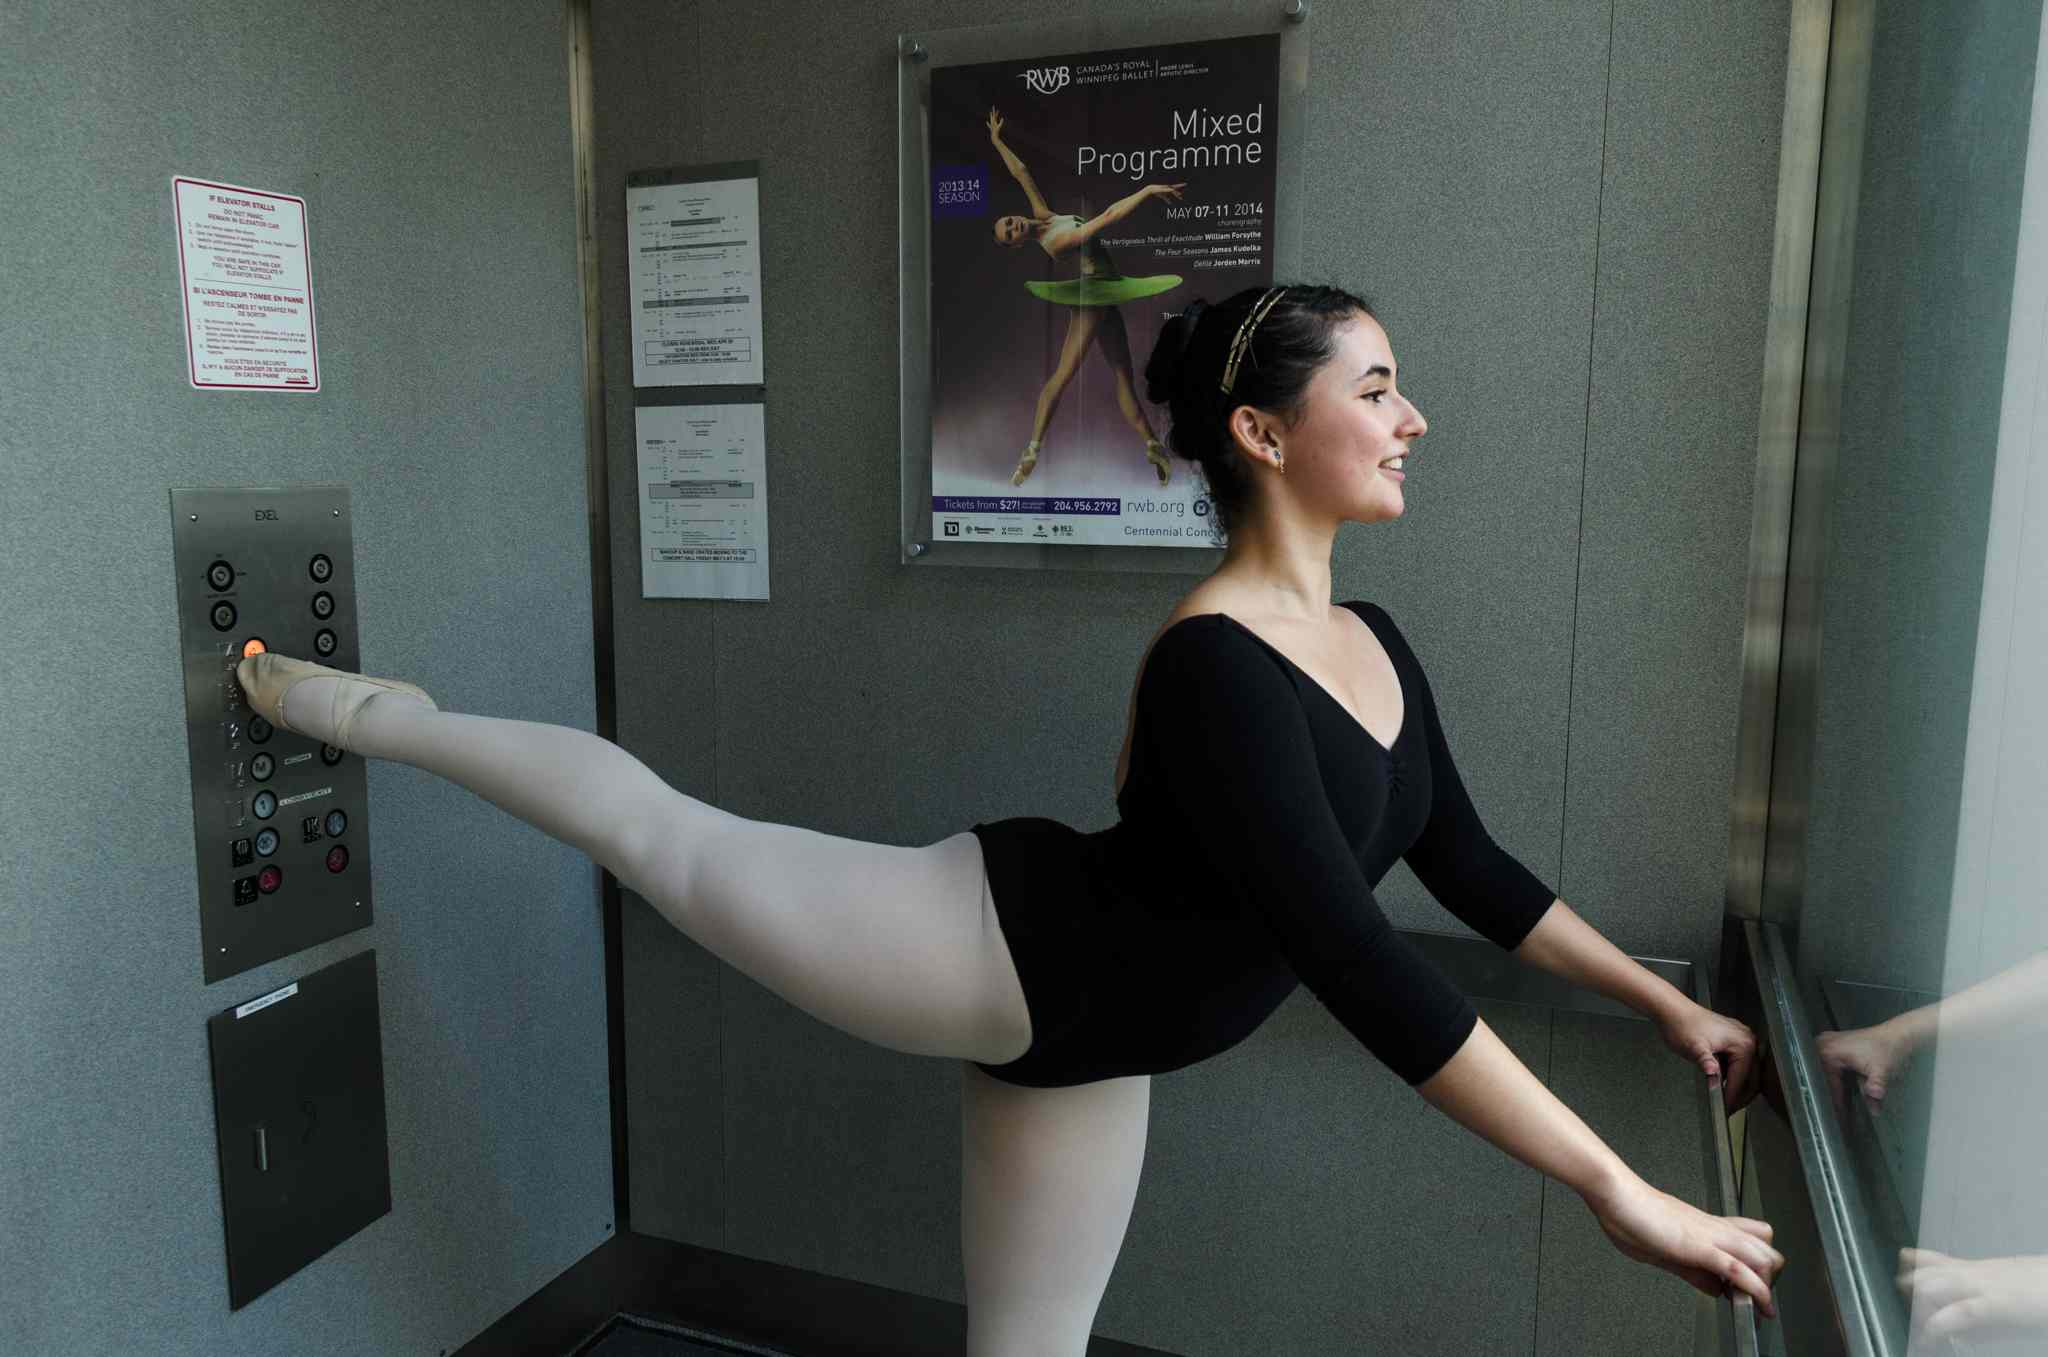 Adriana Ardila poses for a photo at the Royal Winnipeg Ballet school.  Ardila, who is originally from Colombia and now lives in Tallahassee, Florida, flew to Winnipeg for the audition.